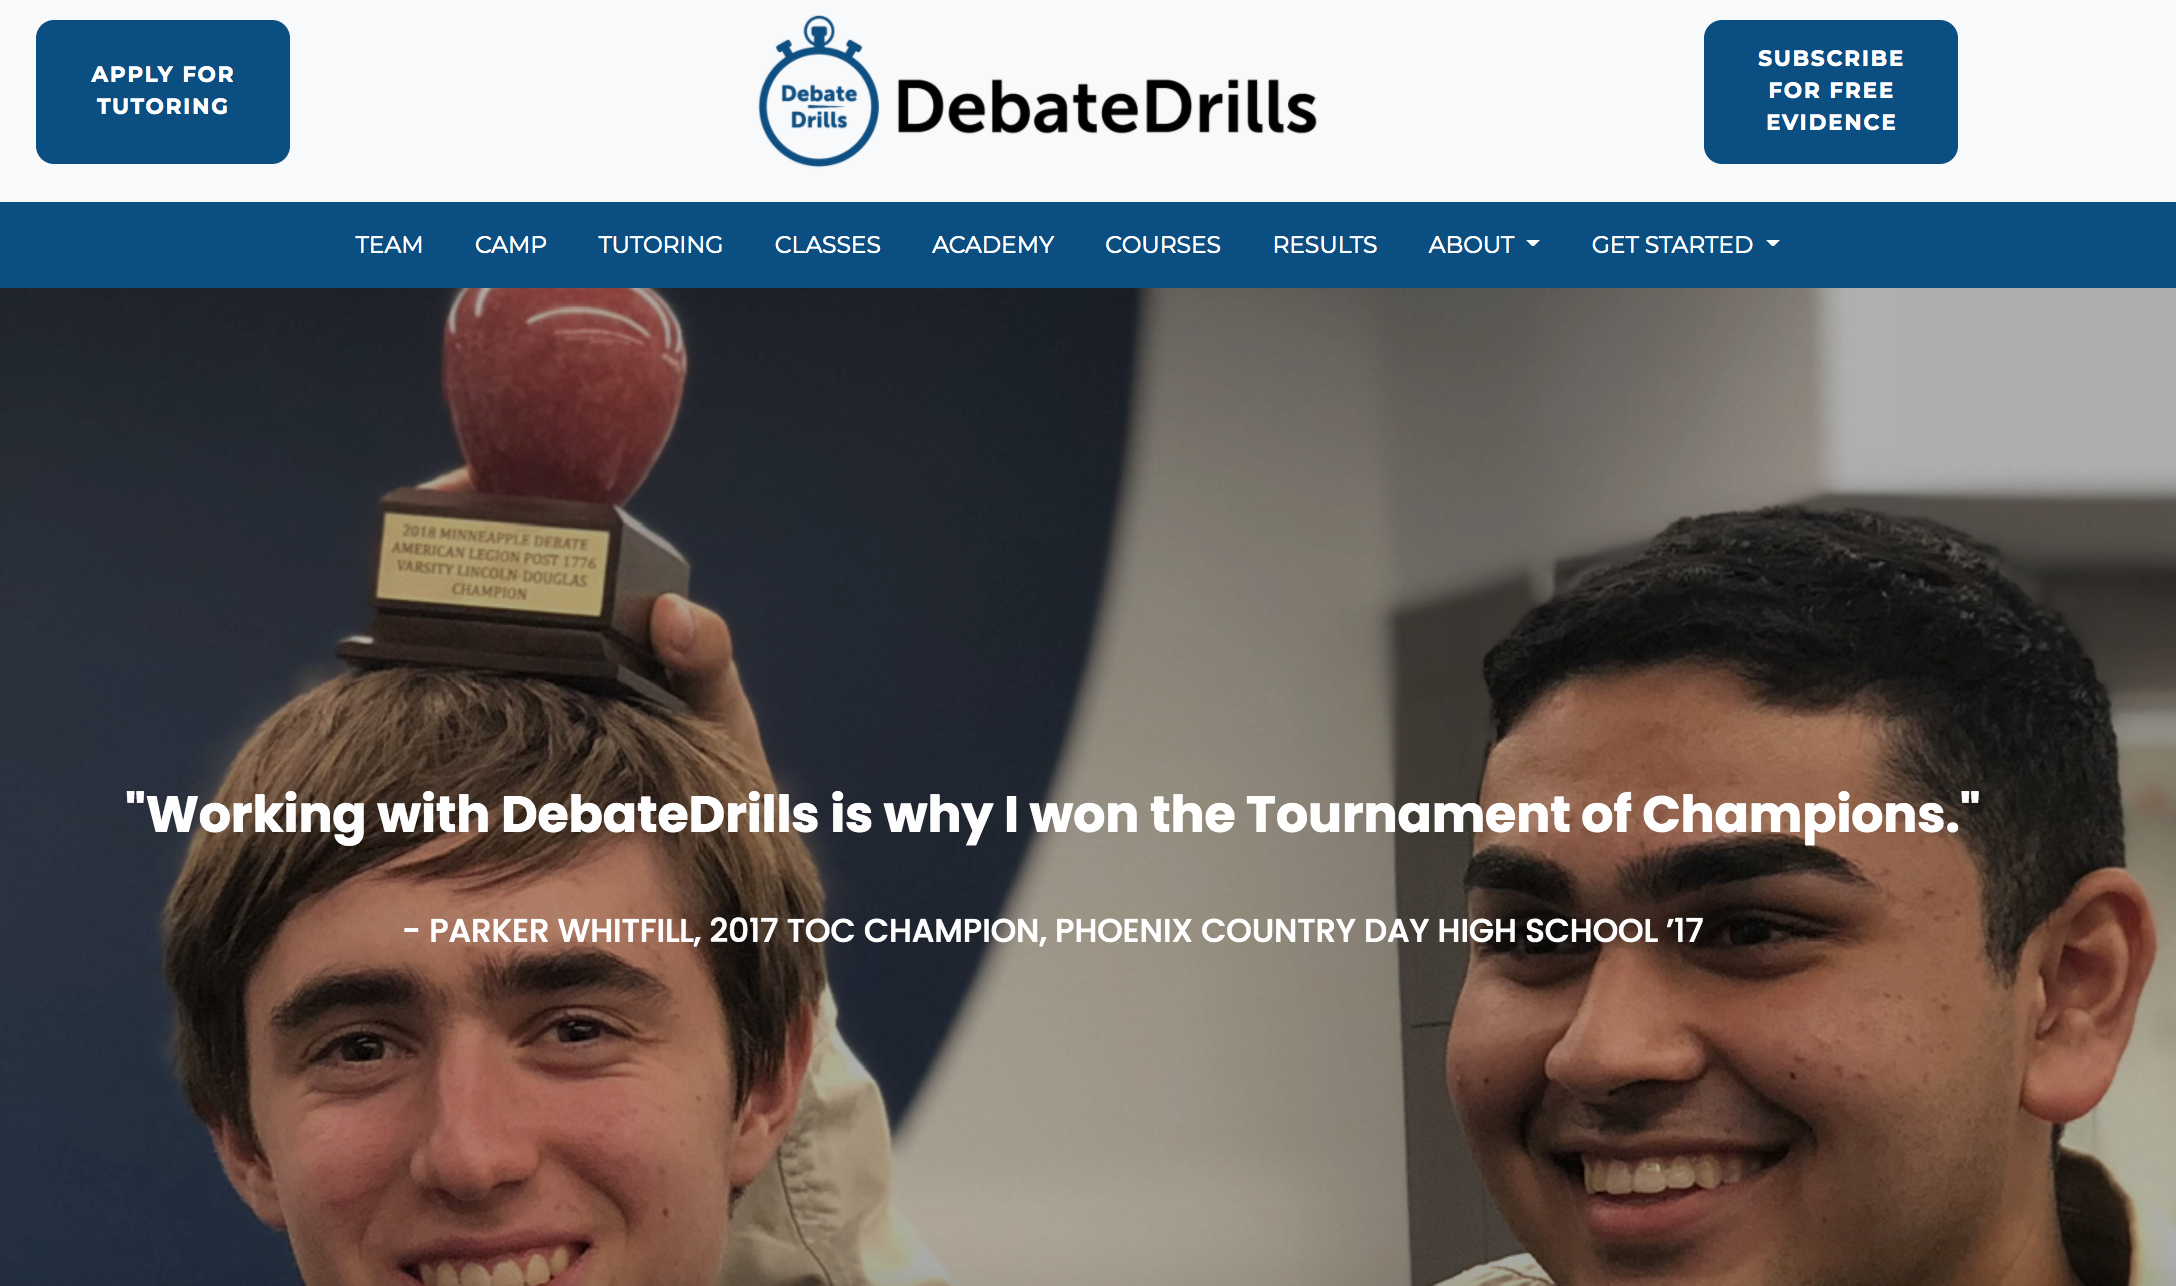 The new site has helped DebateDrills attract more clients.